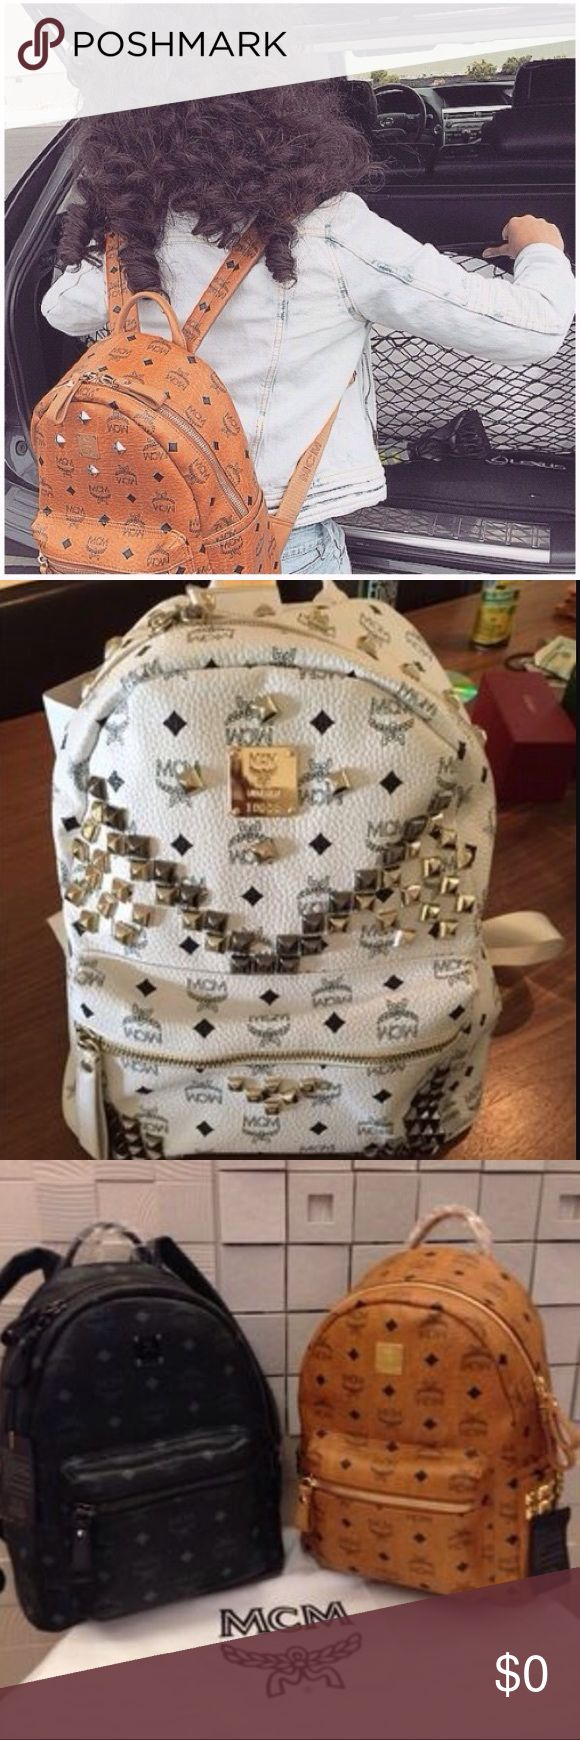 ❕🔥LOOKING FOR MCM BOOKBAGS🔥❕ (medium)🎉 ‼️Looking for meduim MCM bookbag‼️ Authentic or not but in good condition, preferibly lower than $200🙂 Bags Backpacks